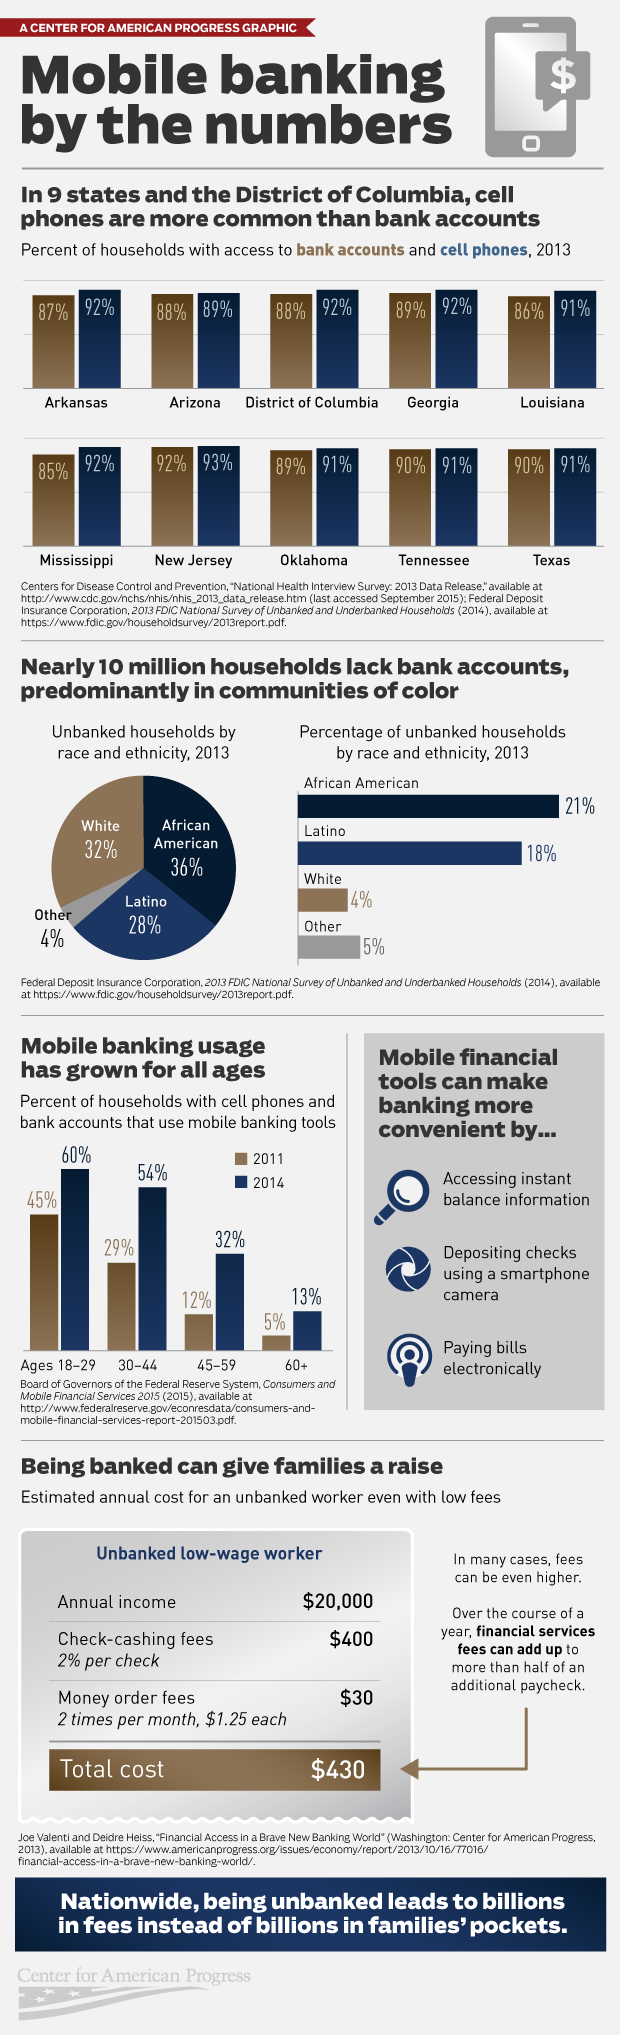 mobile_banking1